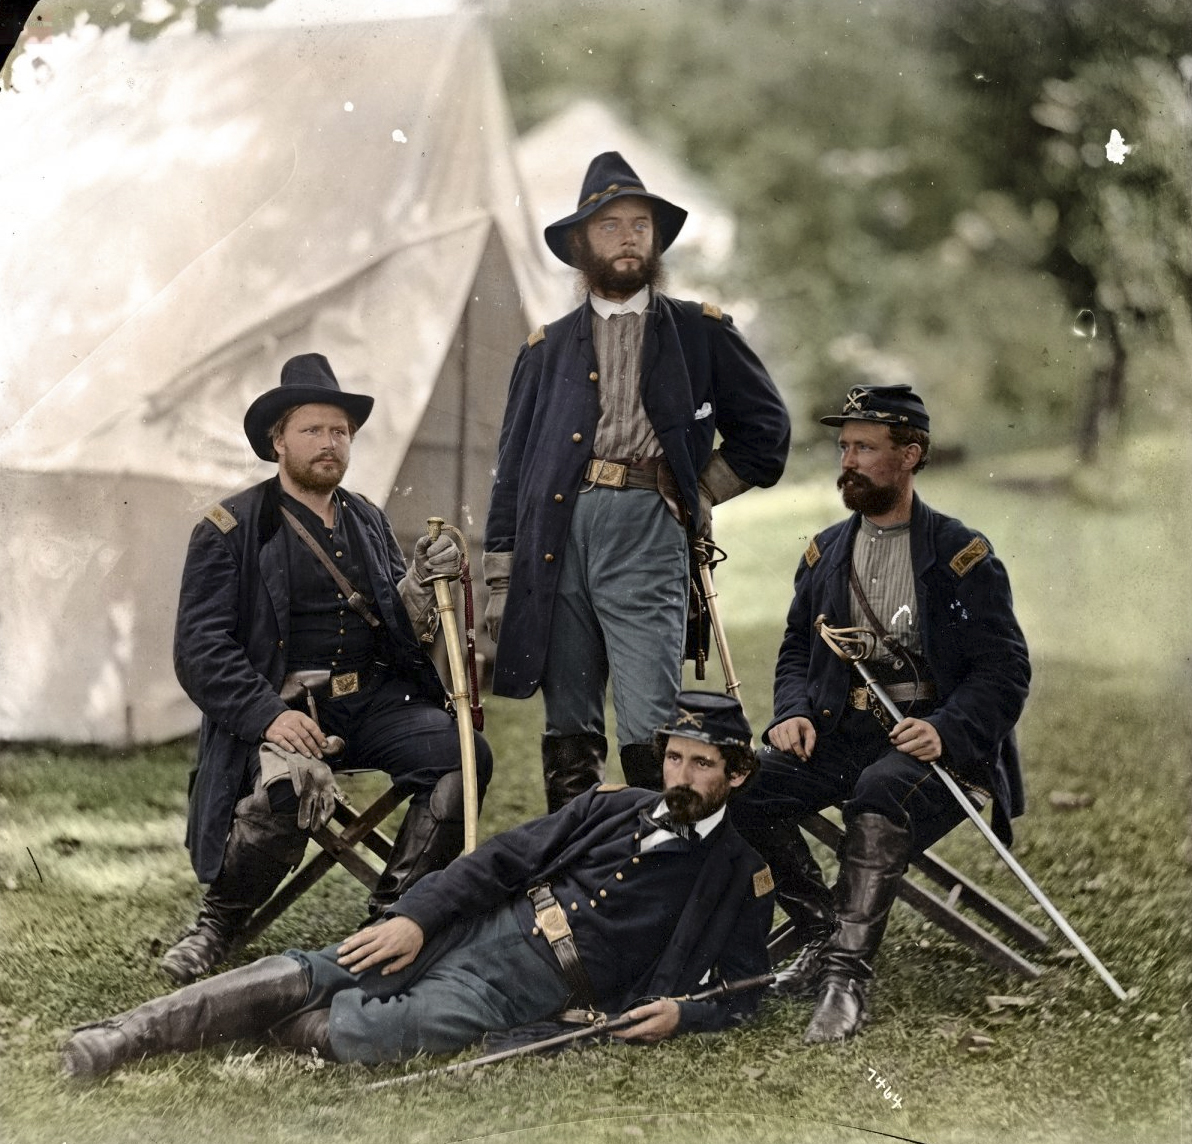 Historical: Remarkable Colorized Photos From The American Civil War